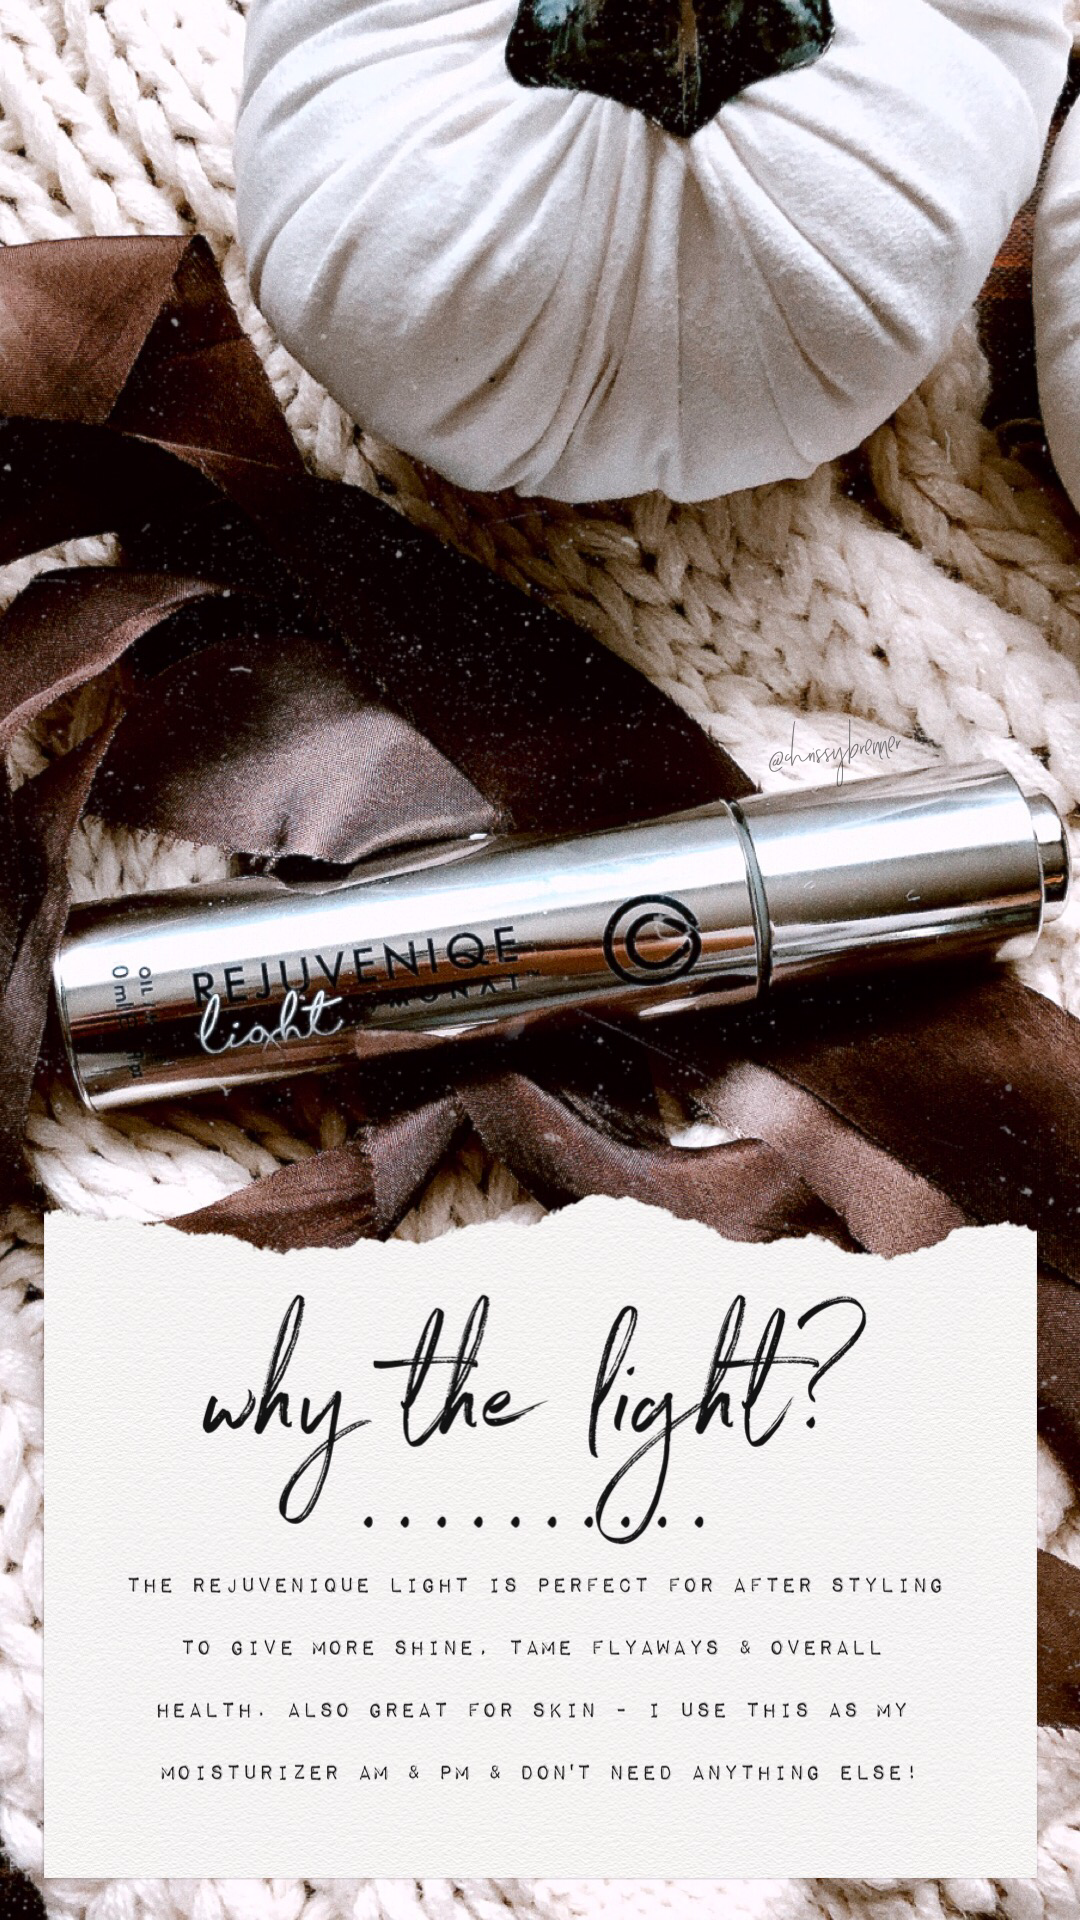 why the light? ••• the rejuvenique light oil is perfect